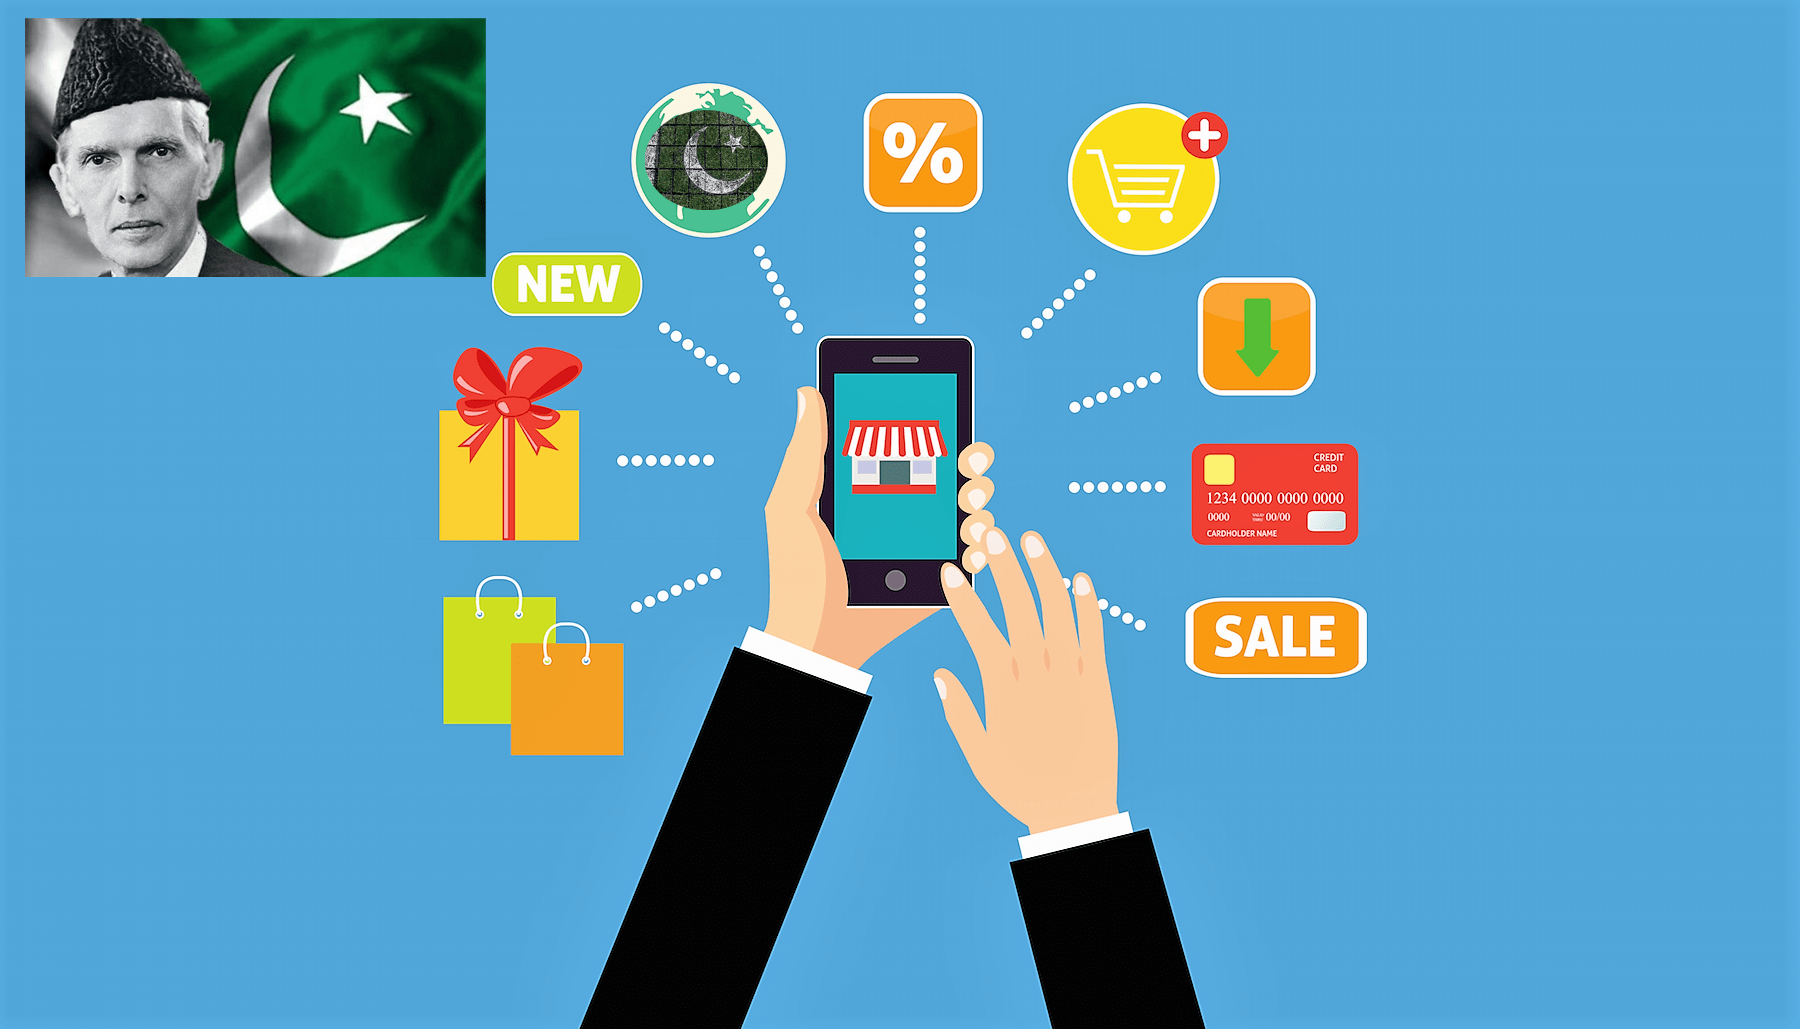 Business to consumer E-Commerce is on the rise in Pakistan